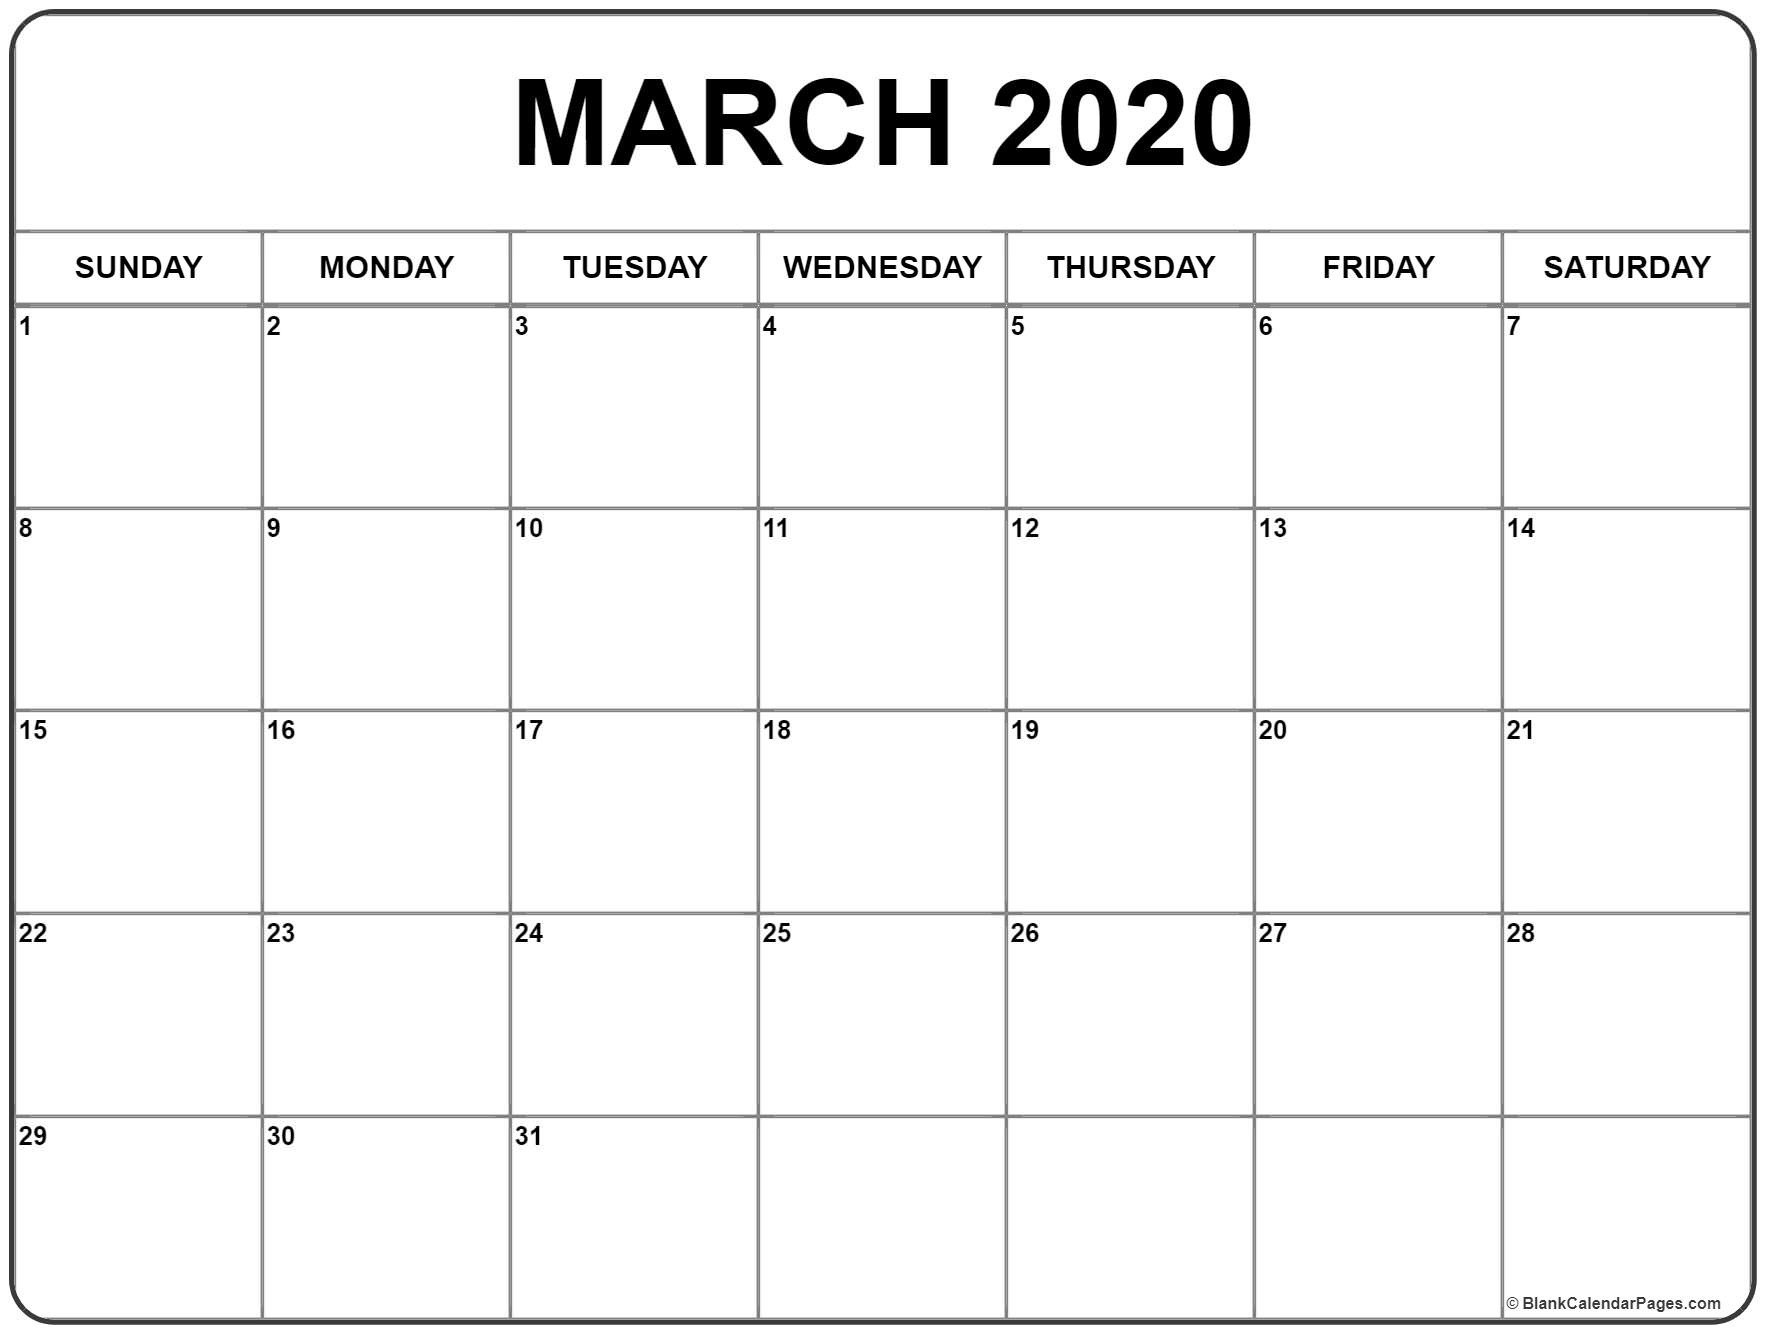 March Calendar Archives » Creative Calendar Ideas-Calendar Template 2020 Printable Free With Prior And Next Month